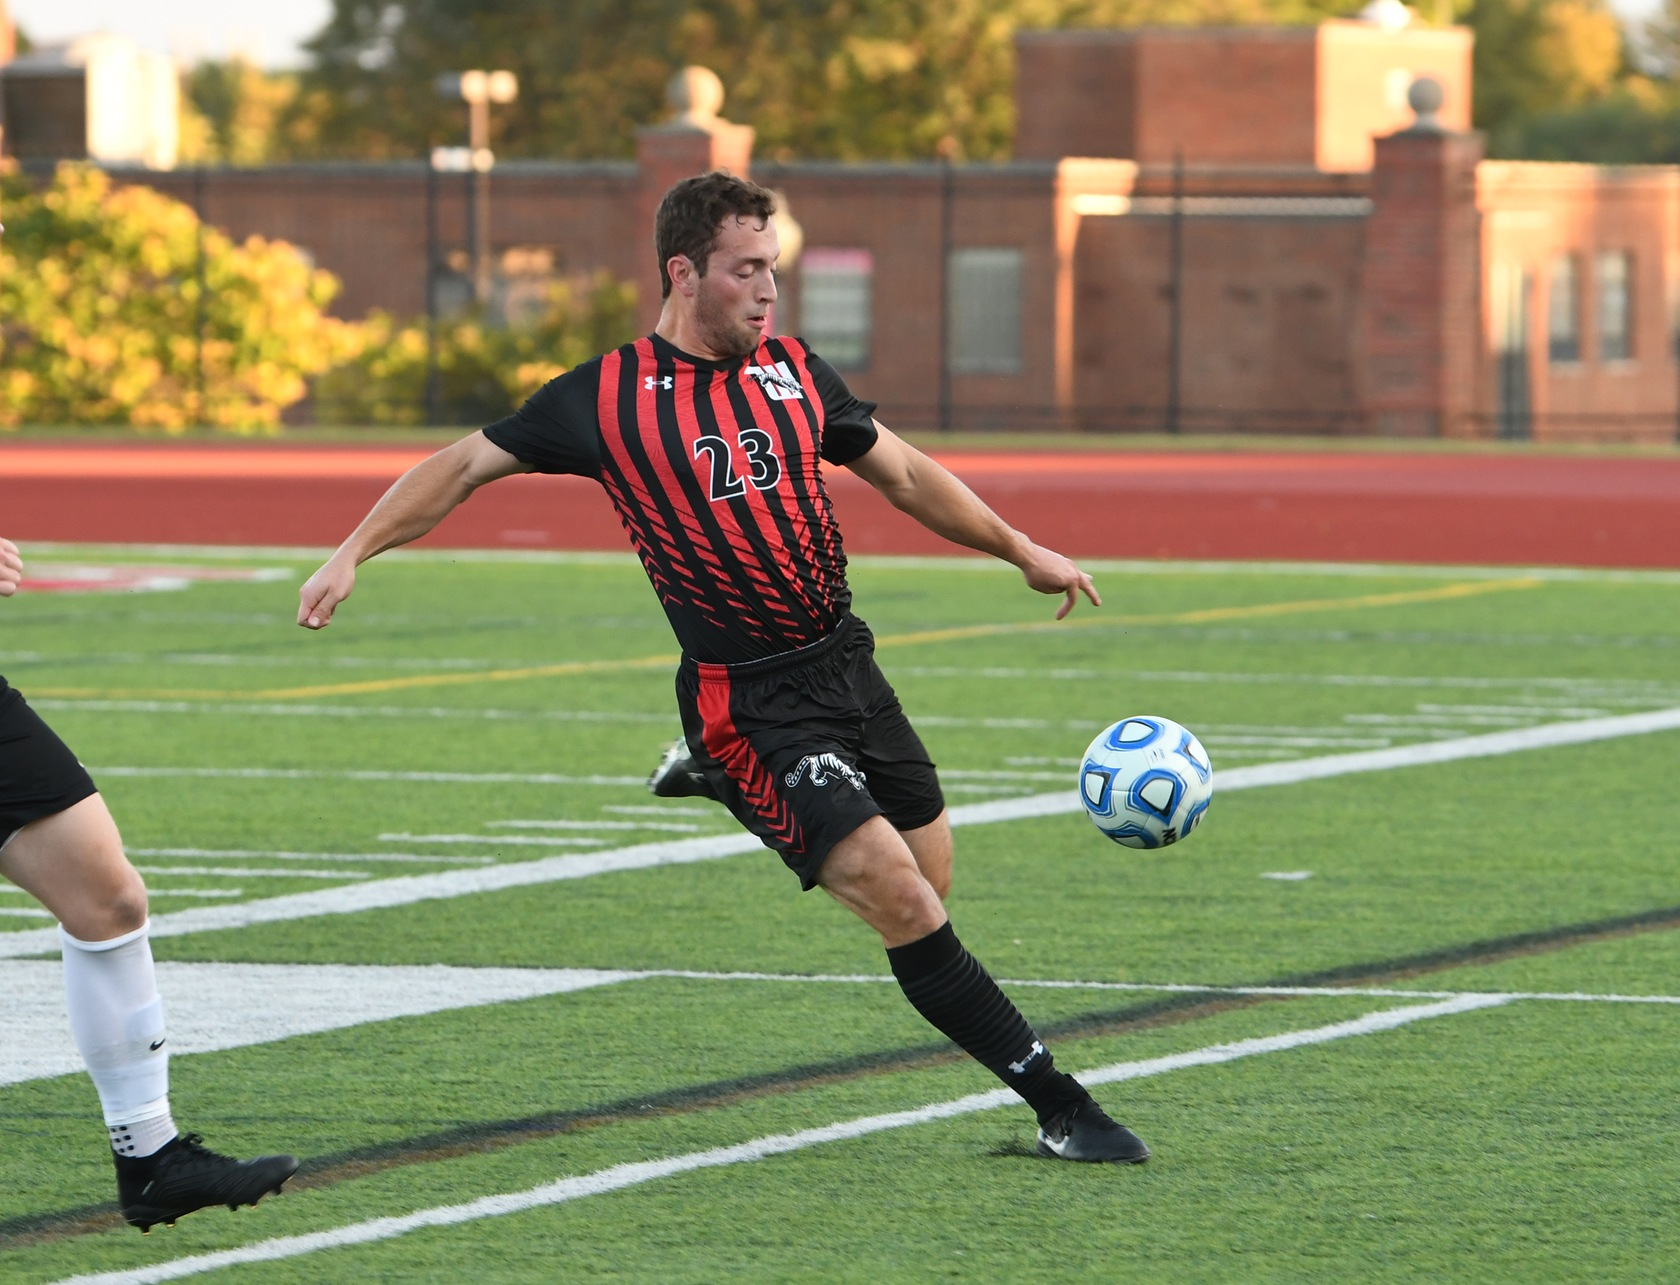 Senior Christian Randazzo clears the ball against Albion. (Nick Falzerano/Wittenberg Athletics)